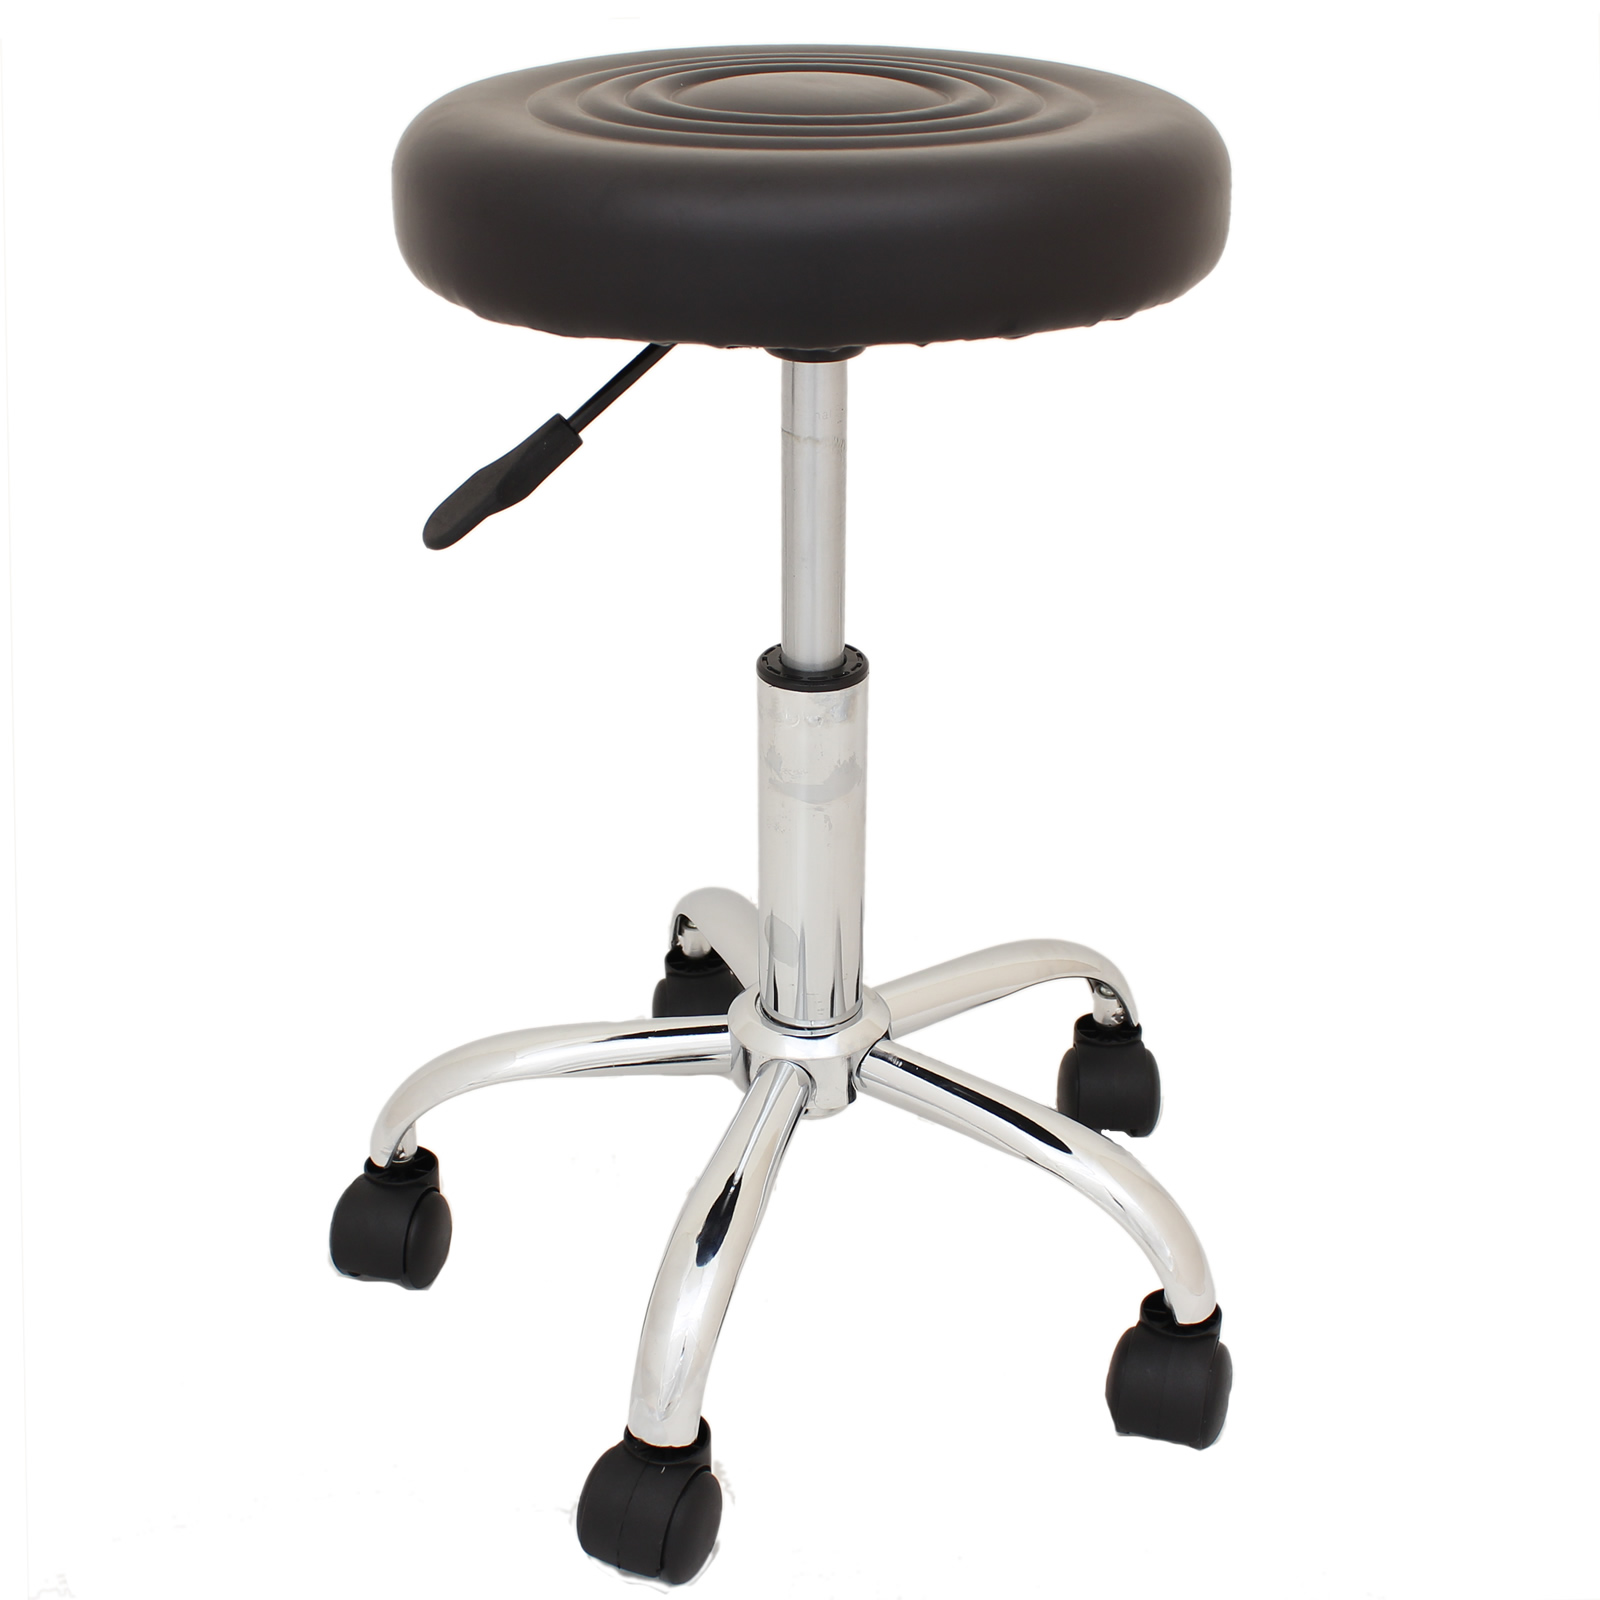 Marvelous Sentinel ADJUSTABLE SWIVEL CHAIR STOOL DRUMMER/THRONE/MUSICIANS/PIANO/ KEYBOARD GAS LIFT